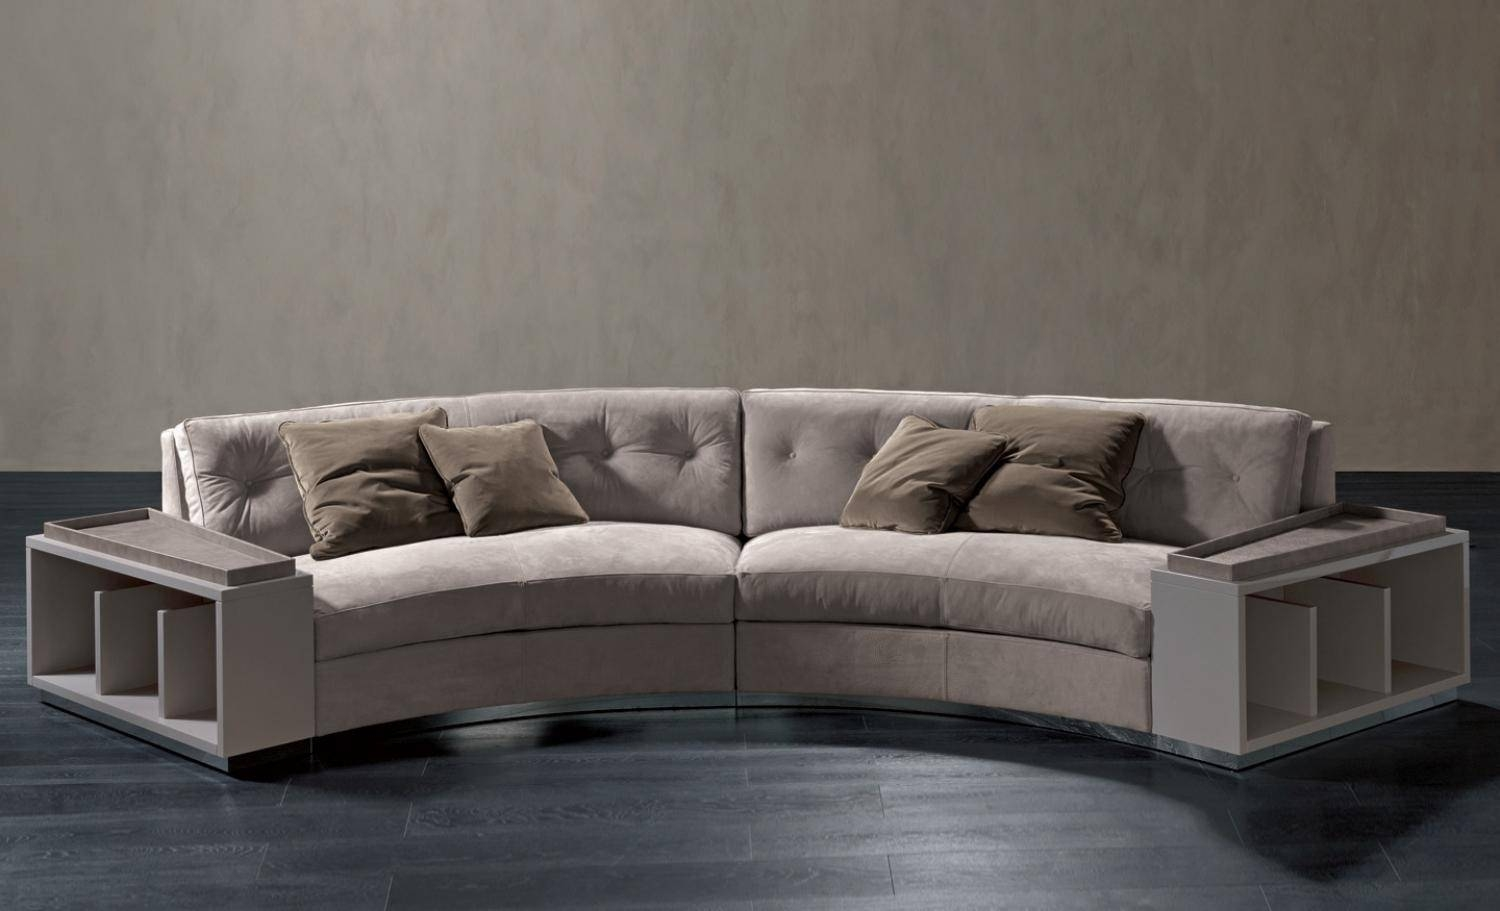 Semi-Circular Sofa In Leather Circus, Rugiano - Luxury Furniture Mr inside Semicircular Sofa (Image 14 of 30)